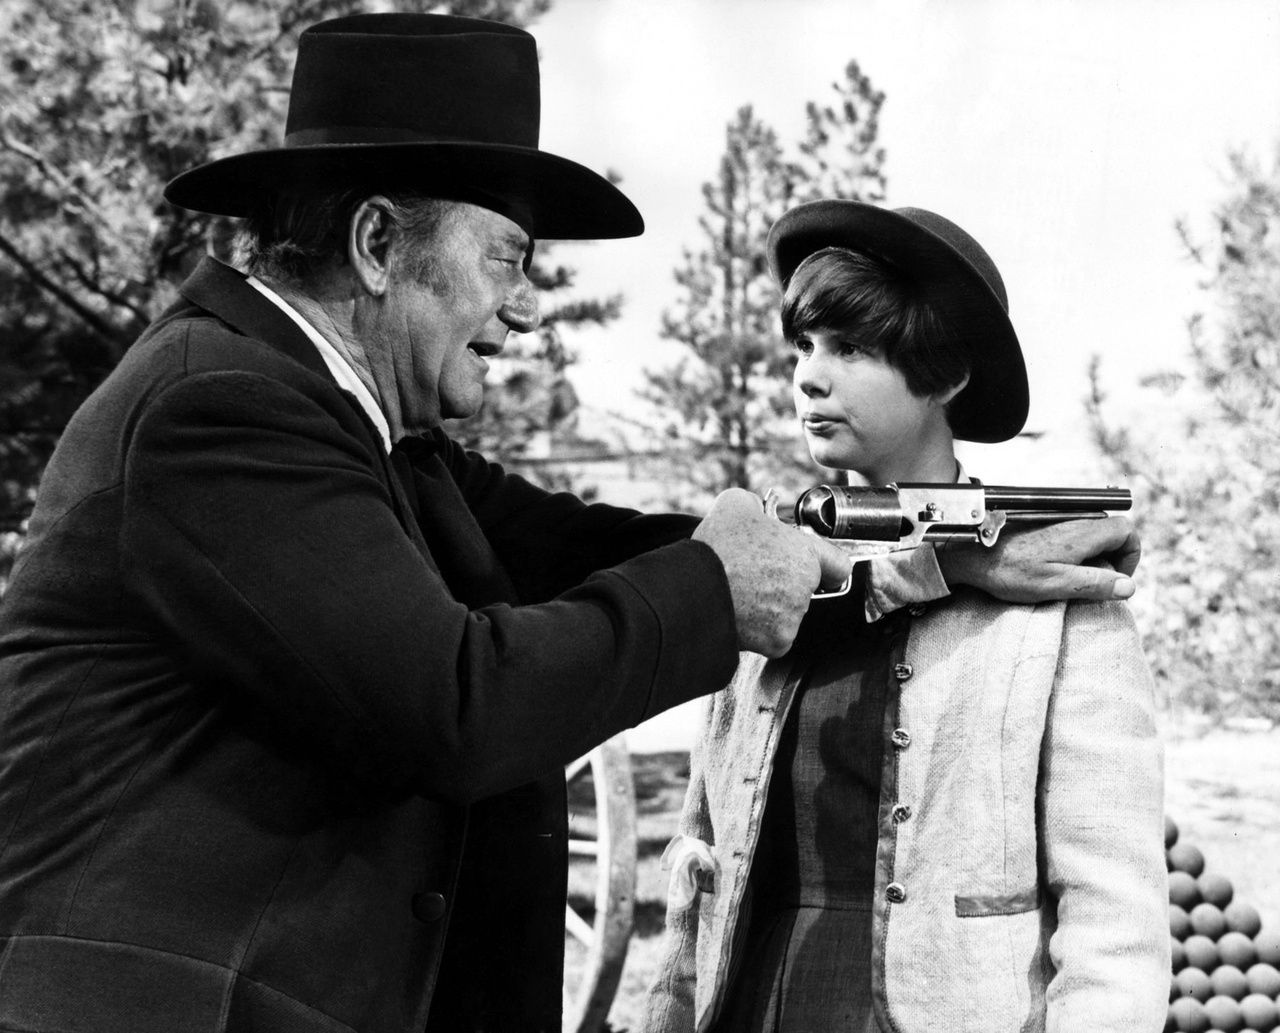 The greatest western of all time, TRUE GRIT! Forget the remake! Watch the original.